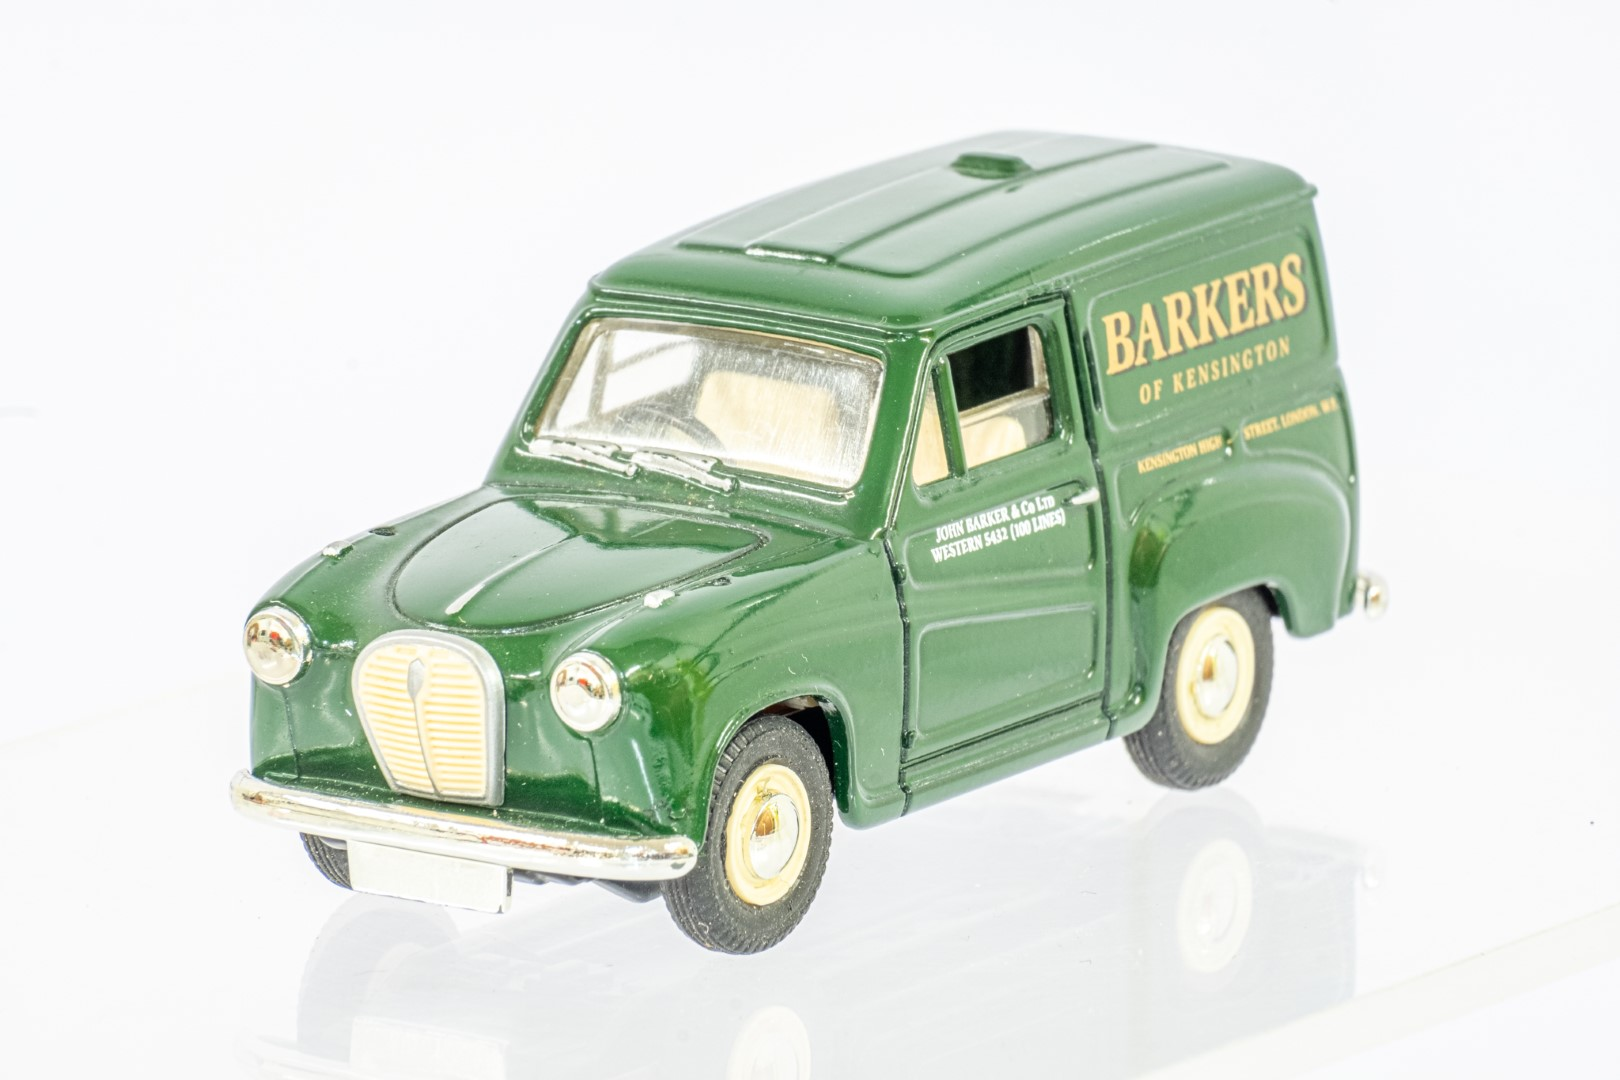 4 x Assorted Loose Car Models - Image 6 of 9